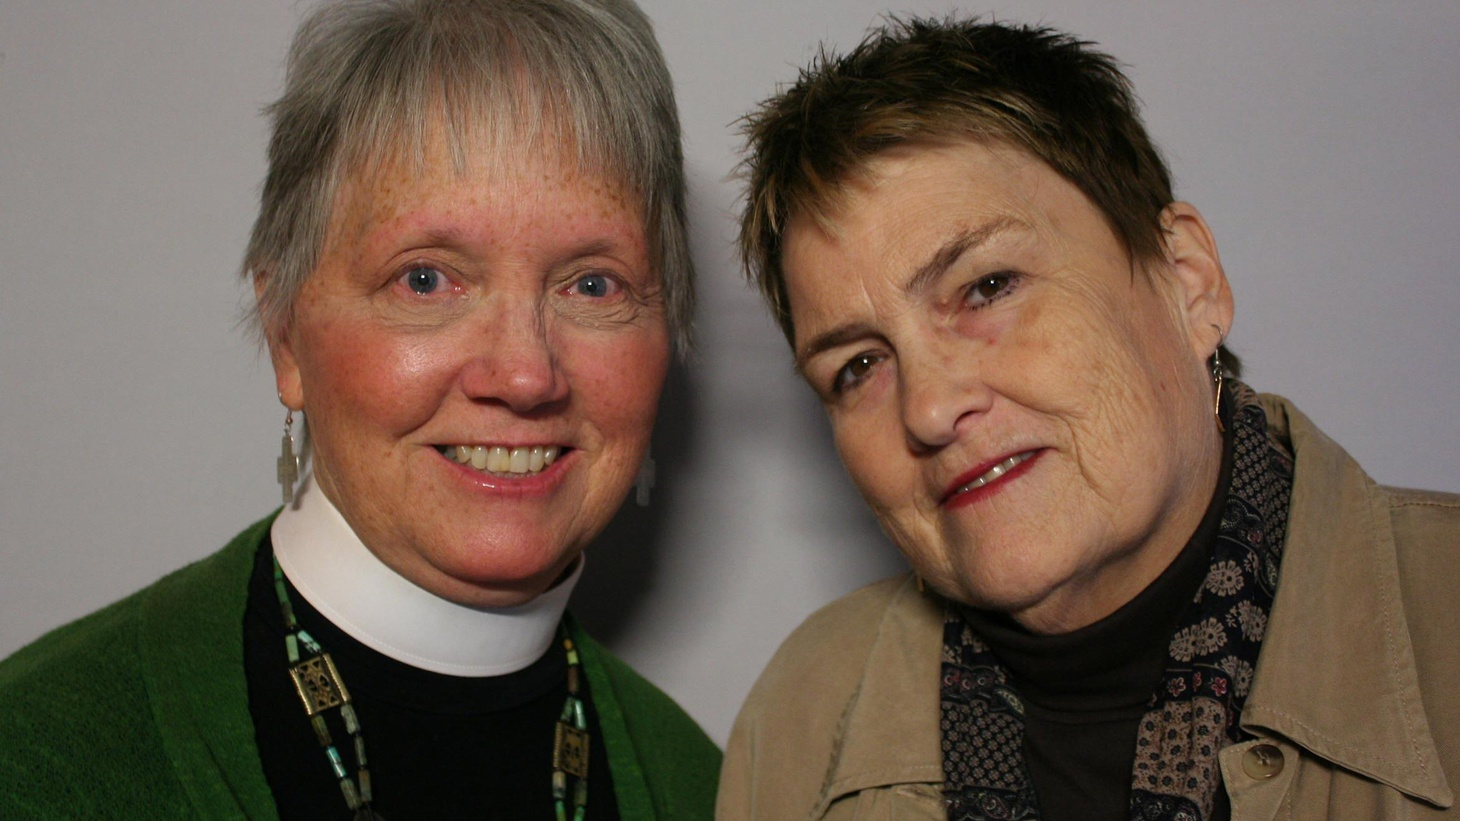 WEB EXCLUSIVE: Susan Russell is a pastor at All-Saints in Pasadena and a lesbian. She shares her story of activism and religion in Southern California.